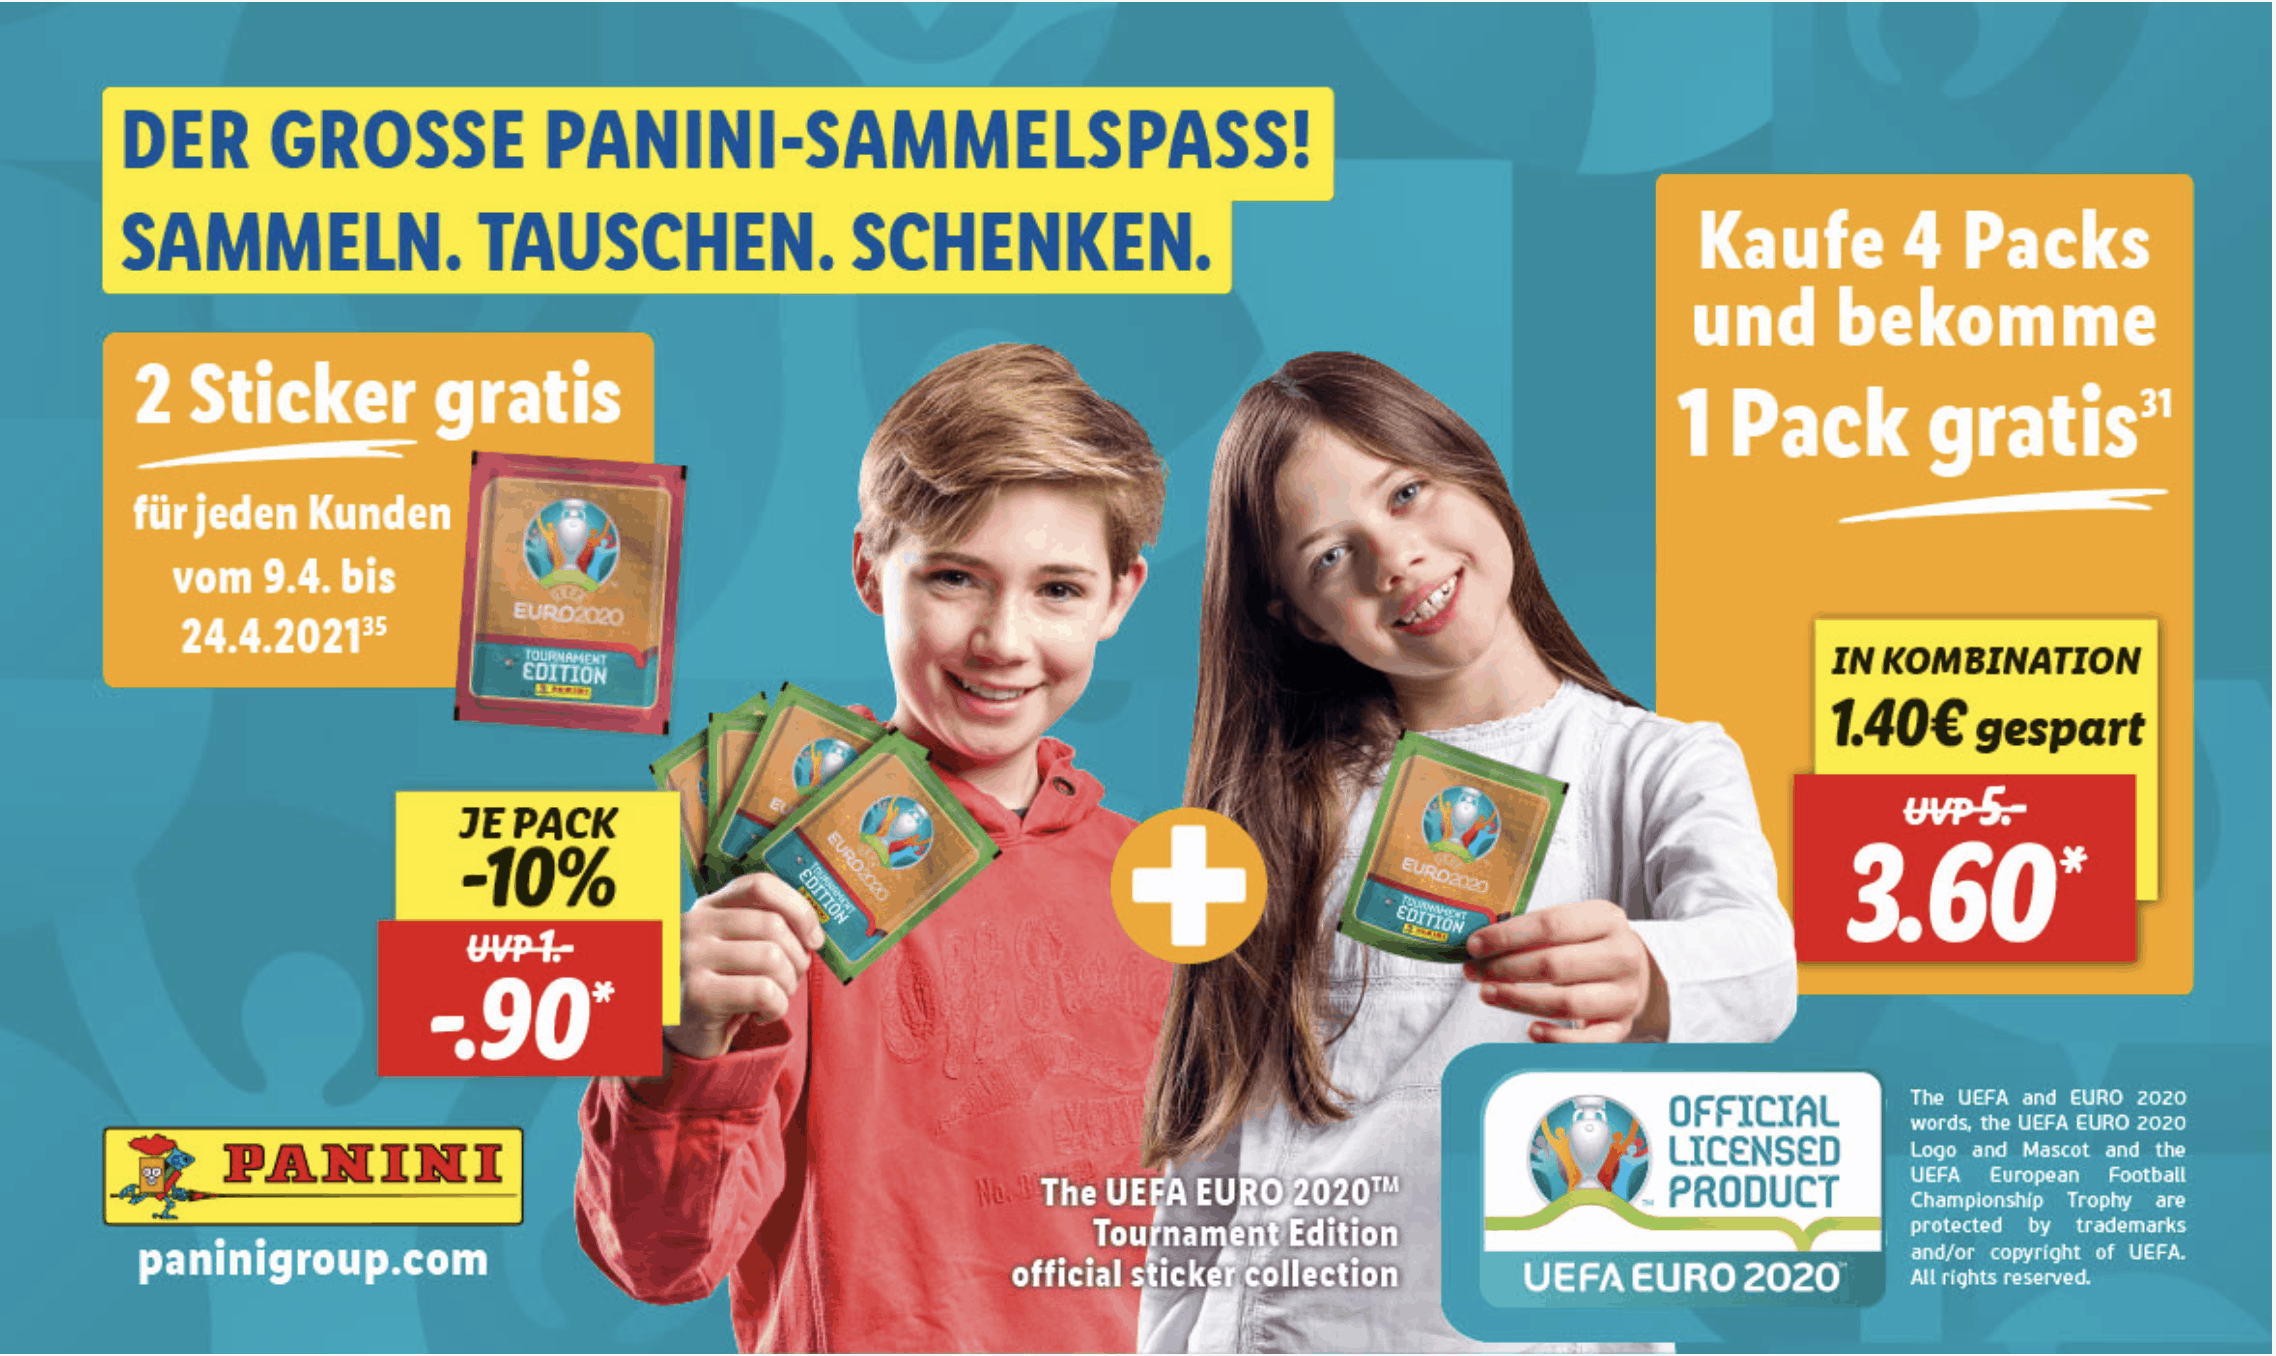 Cases POS-Zugabe-Promotions Lidl Panini